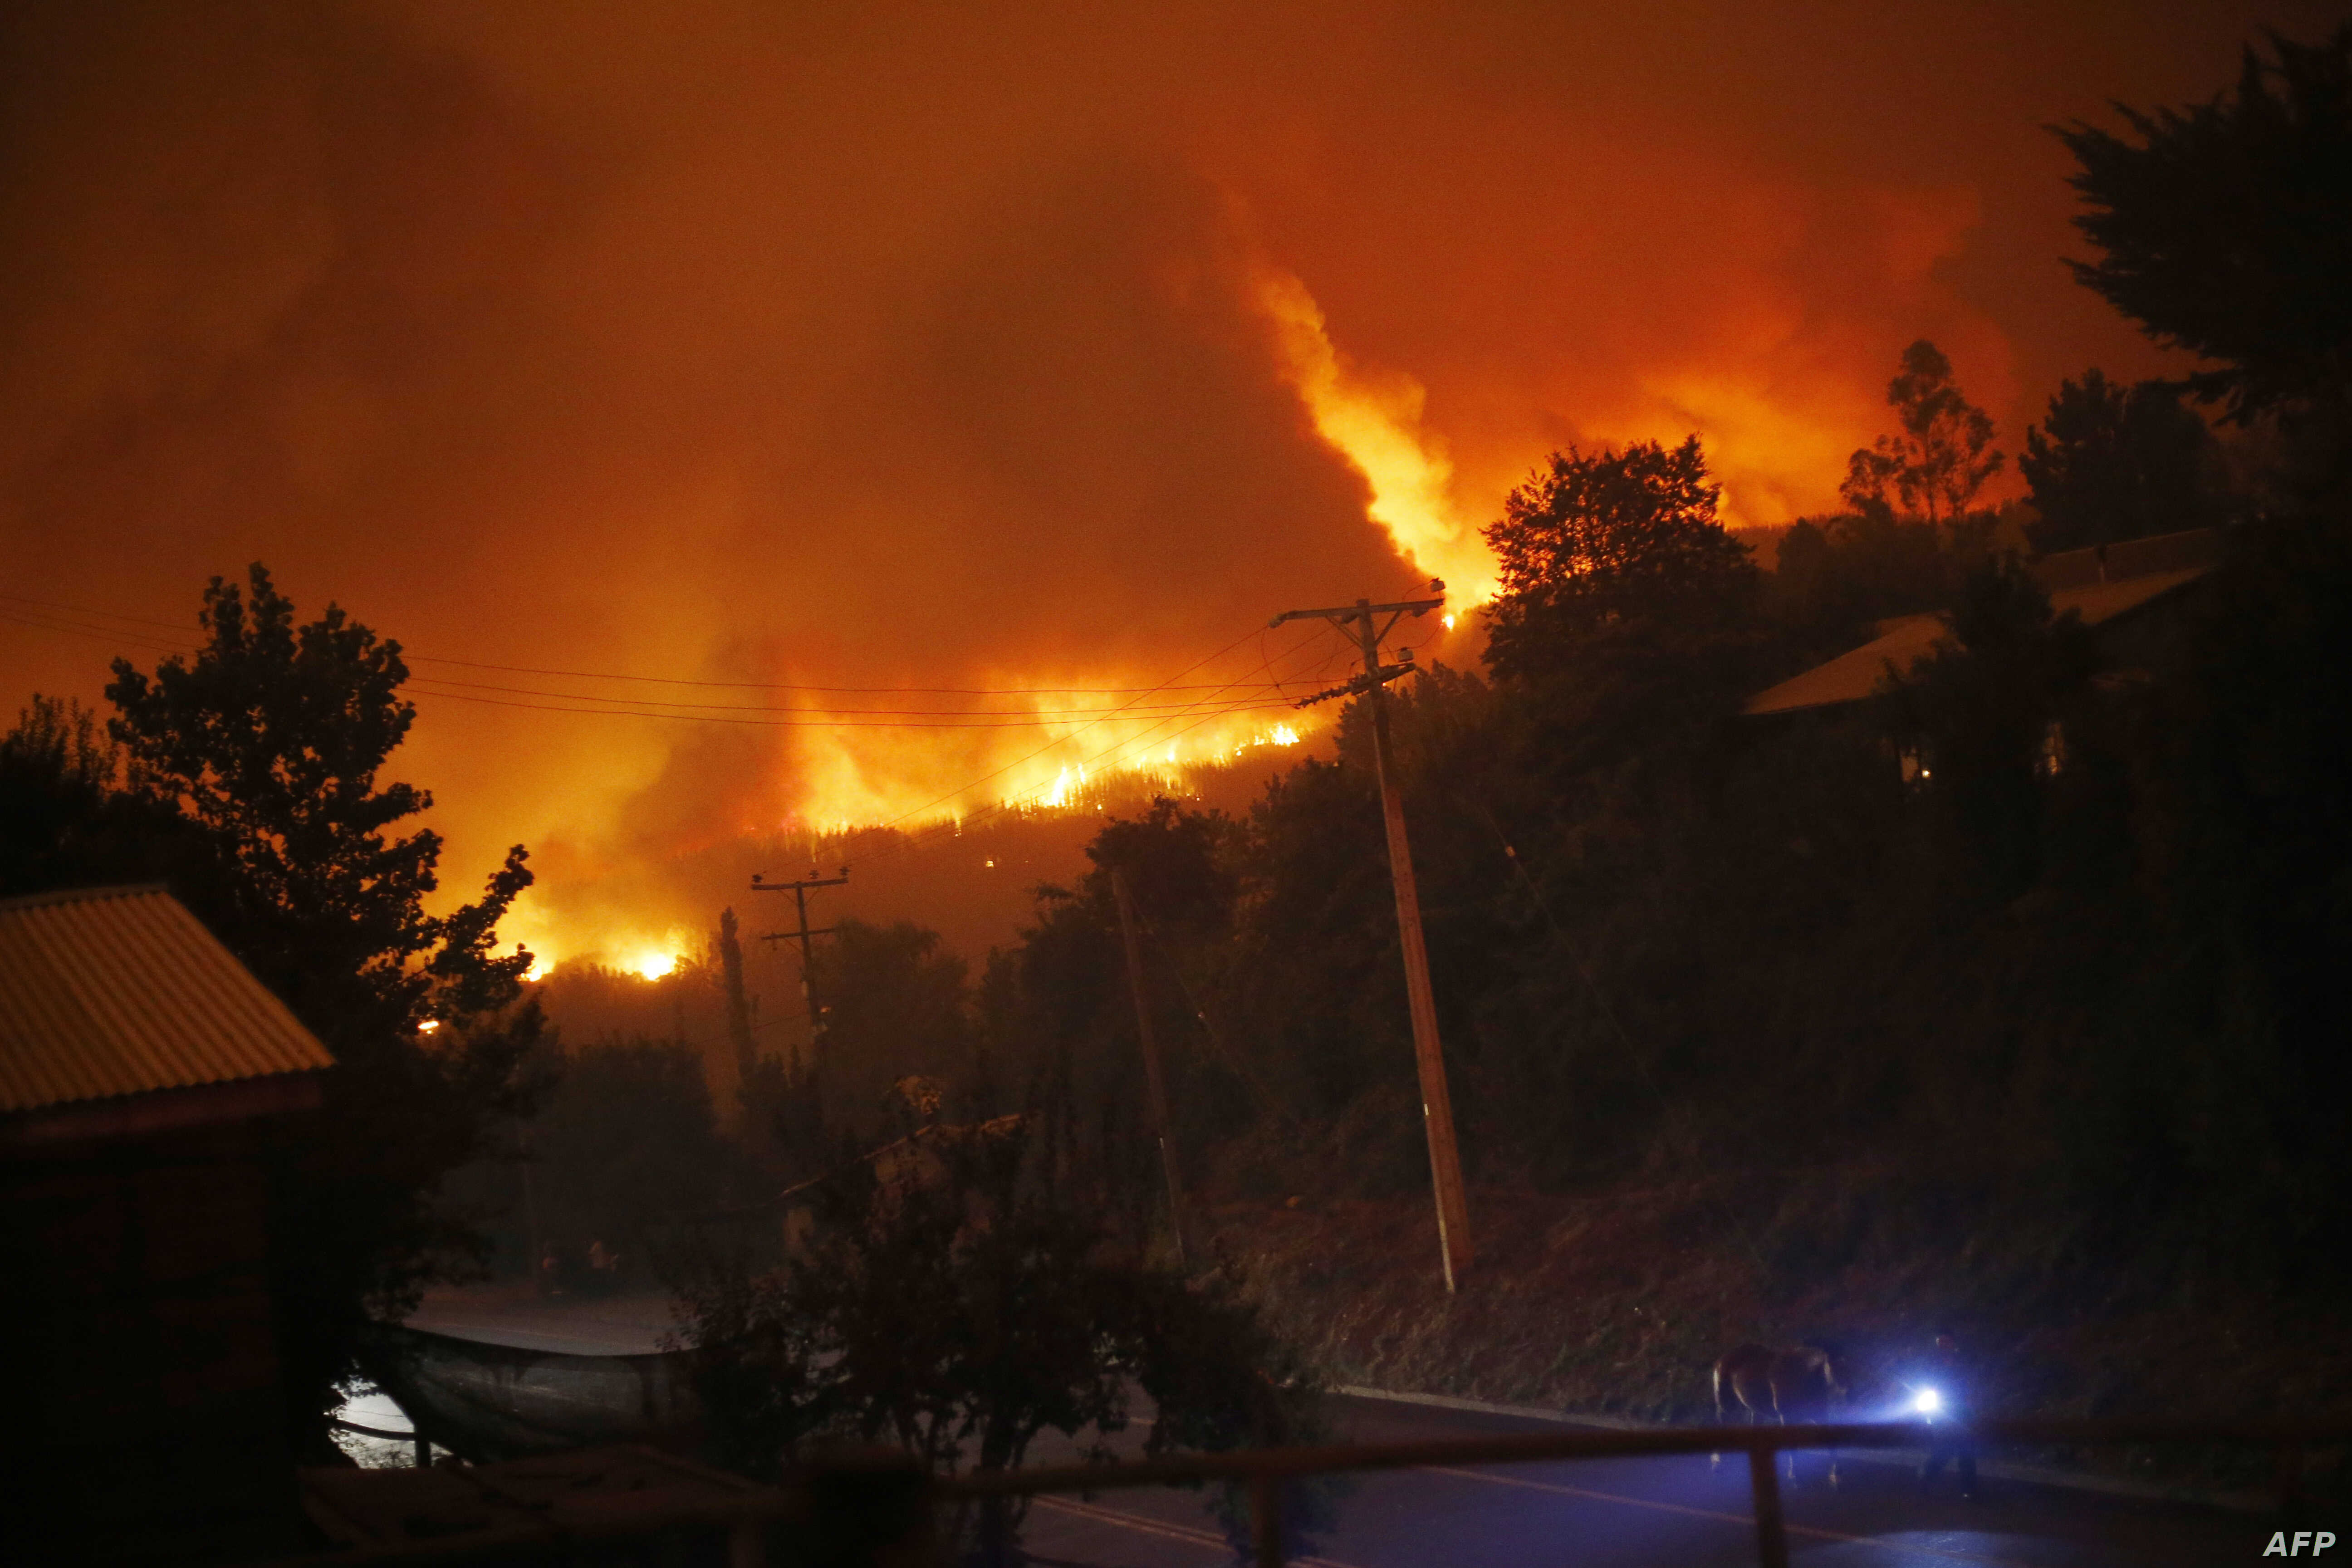 A forest fire burns out of control in Santa Olga, 240 km south of Santiago, Jan. 25, 2017.